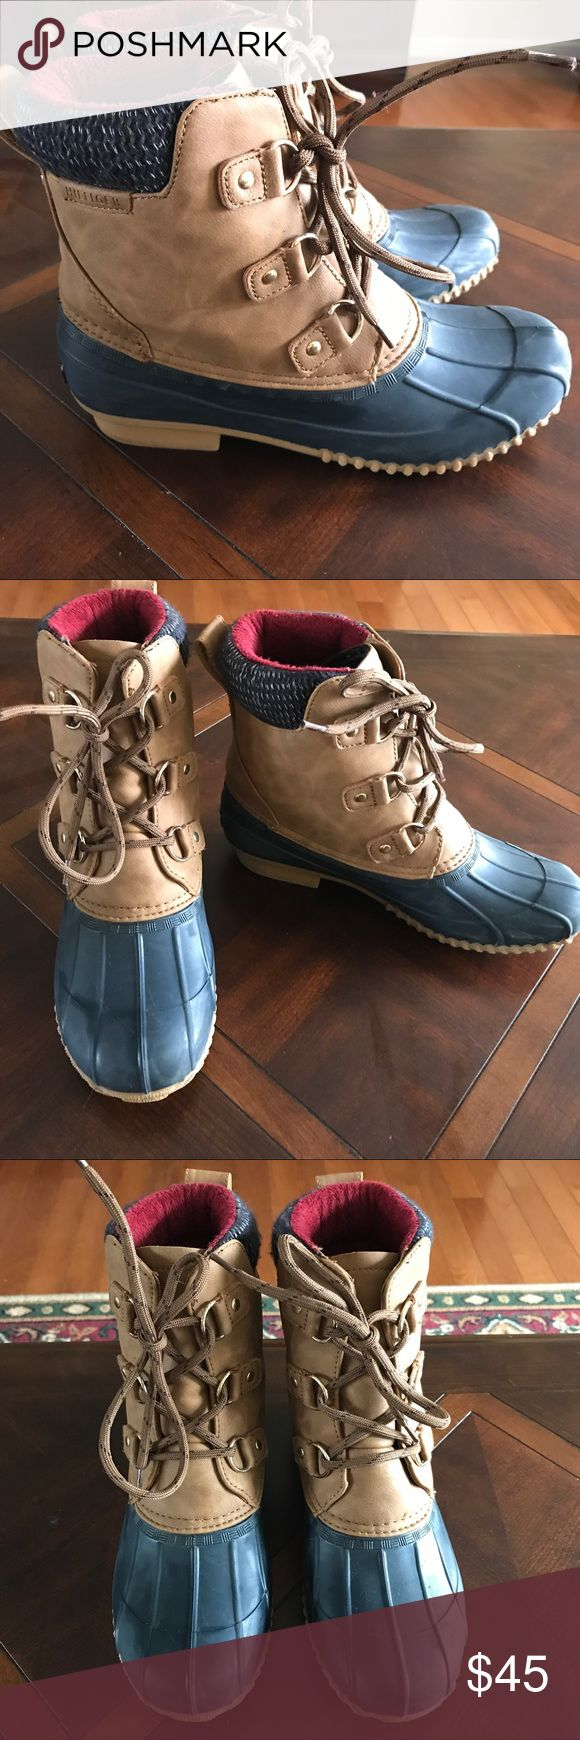 Tommy Hilfiger Duck Boots Womens Tommy Hilfiger Duck Boots, size 9. Have only been wore a few times Tommy Hilfiger Shoes Winter & Rain Boots